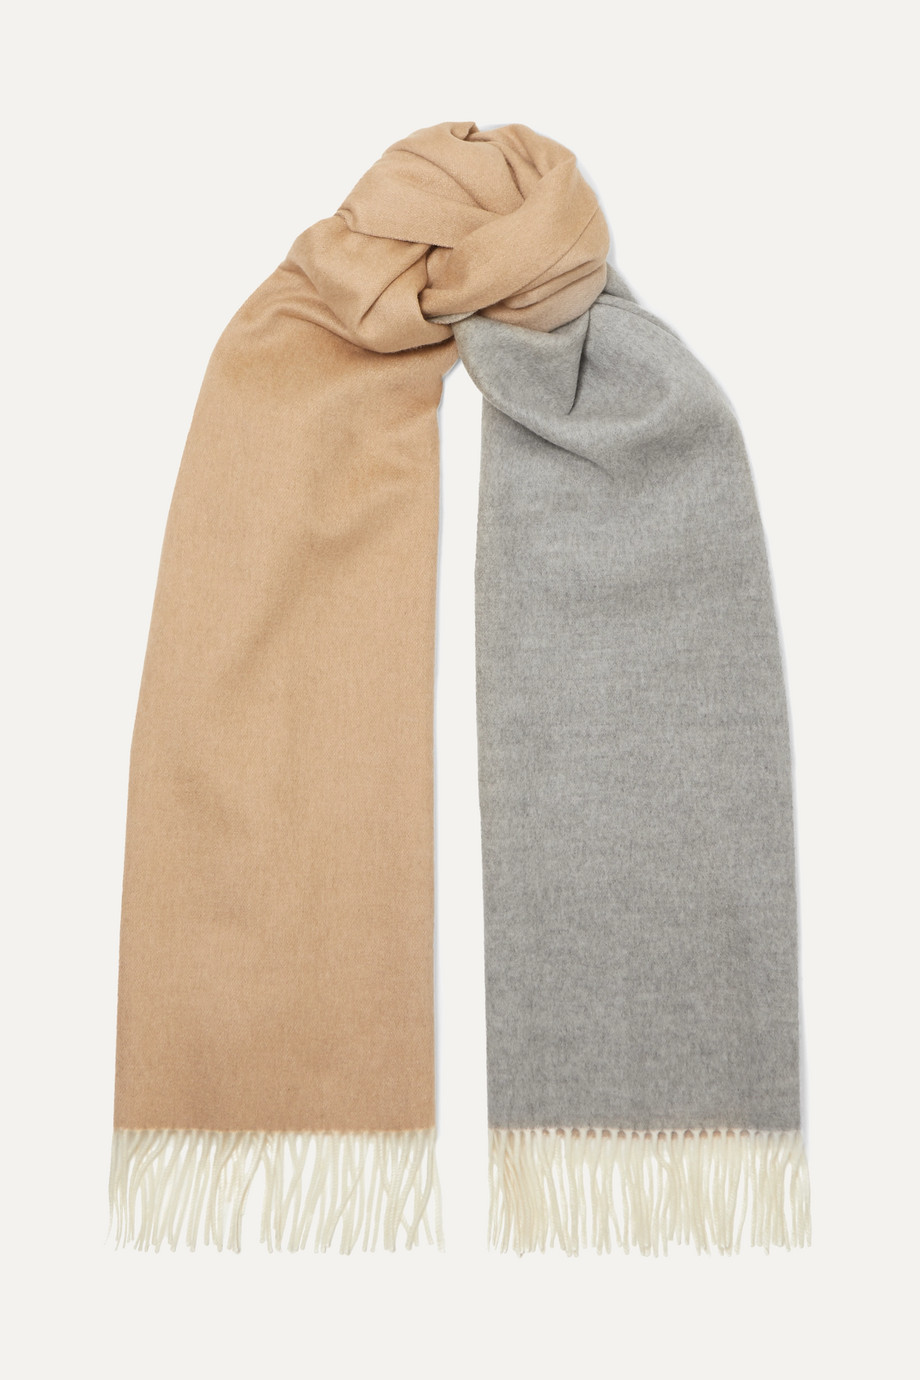 Loro Piana Fringed two-tone cashmere scarf